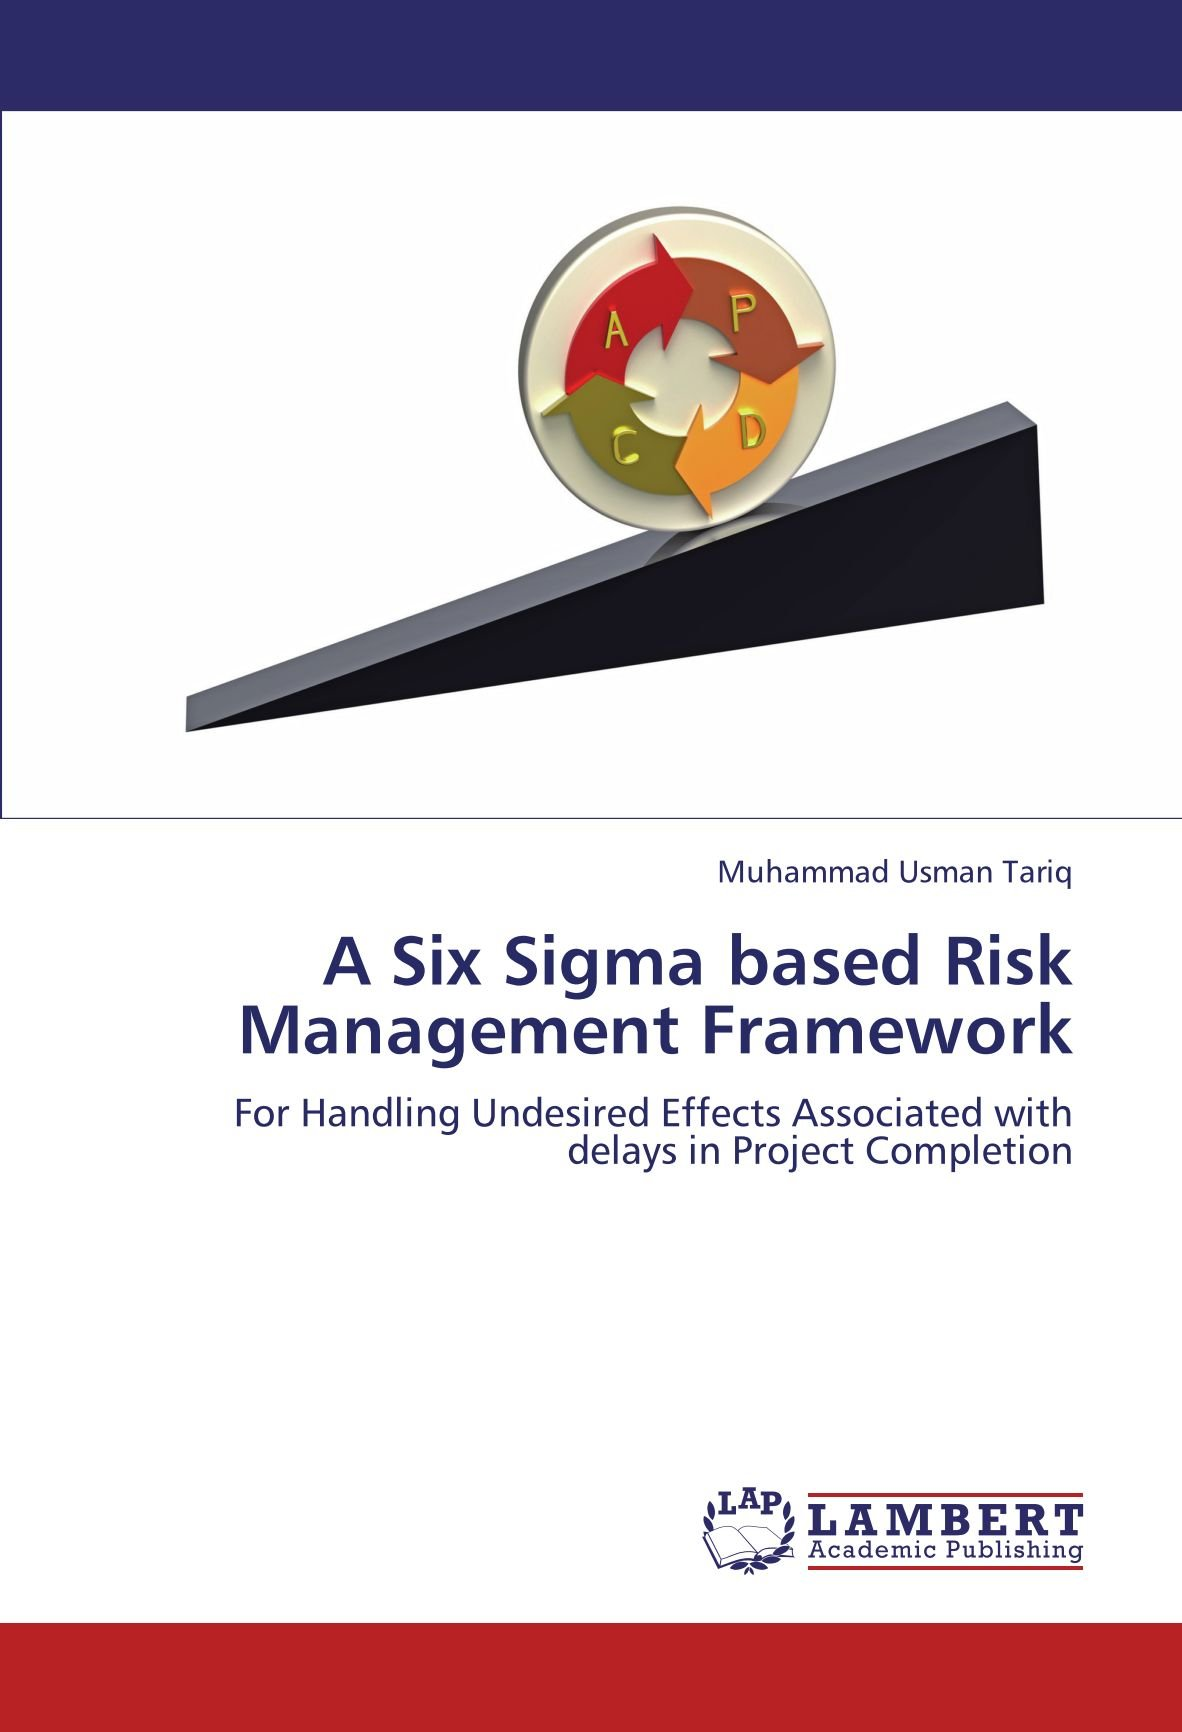 A Six Sigma based Risk Management Framework: For Handling Undesired Effects Associated with delays in Project Completion by LAP LAMBERT Academic Publishing